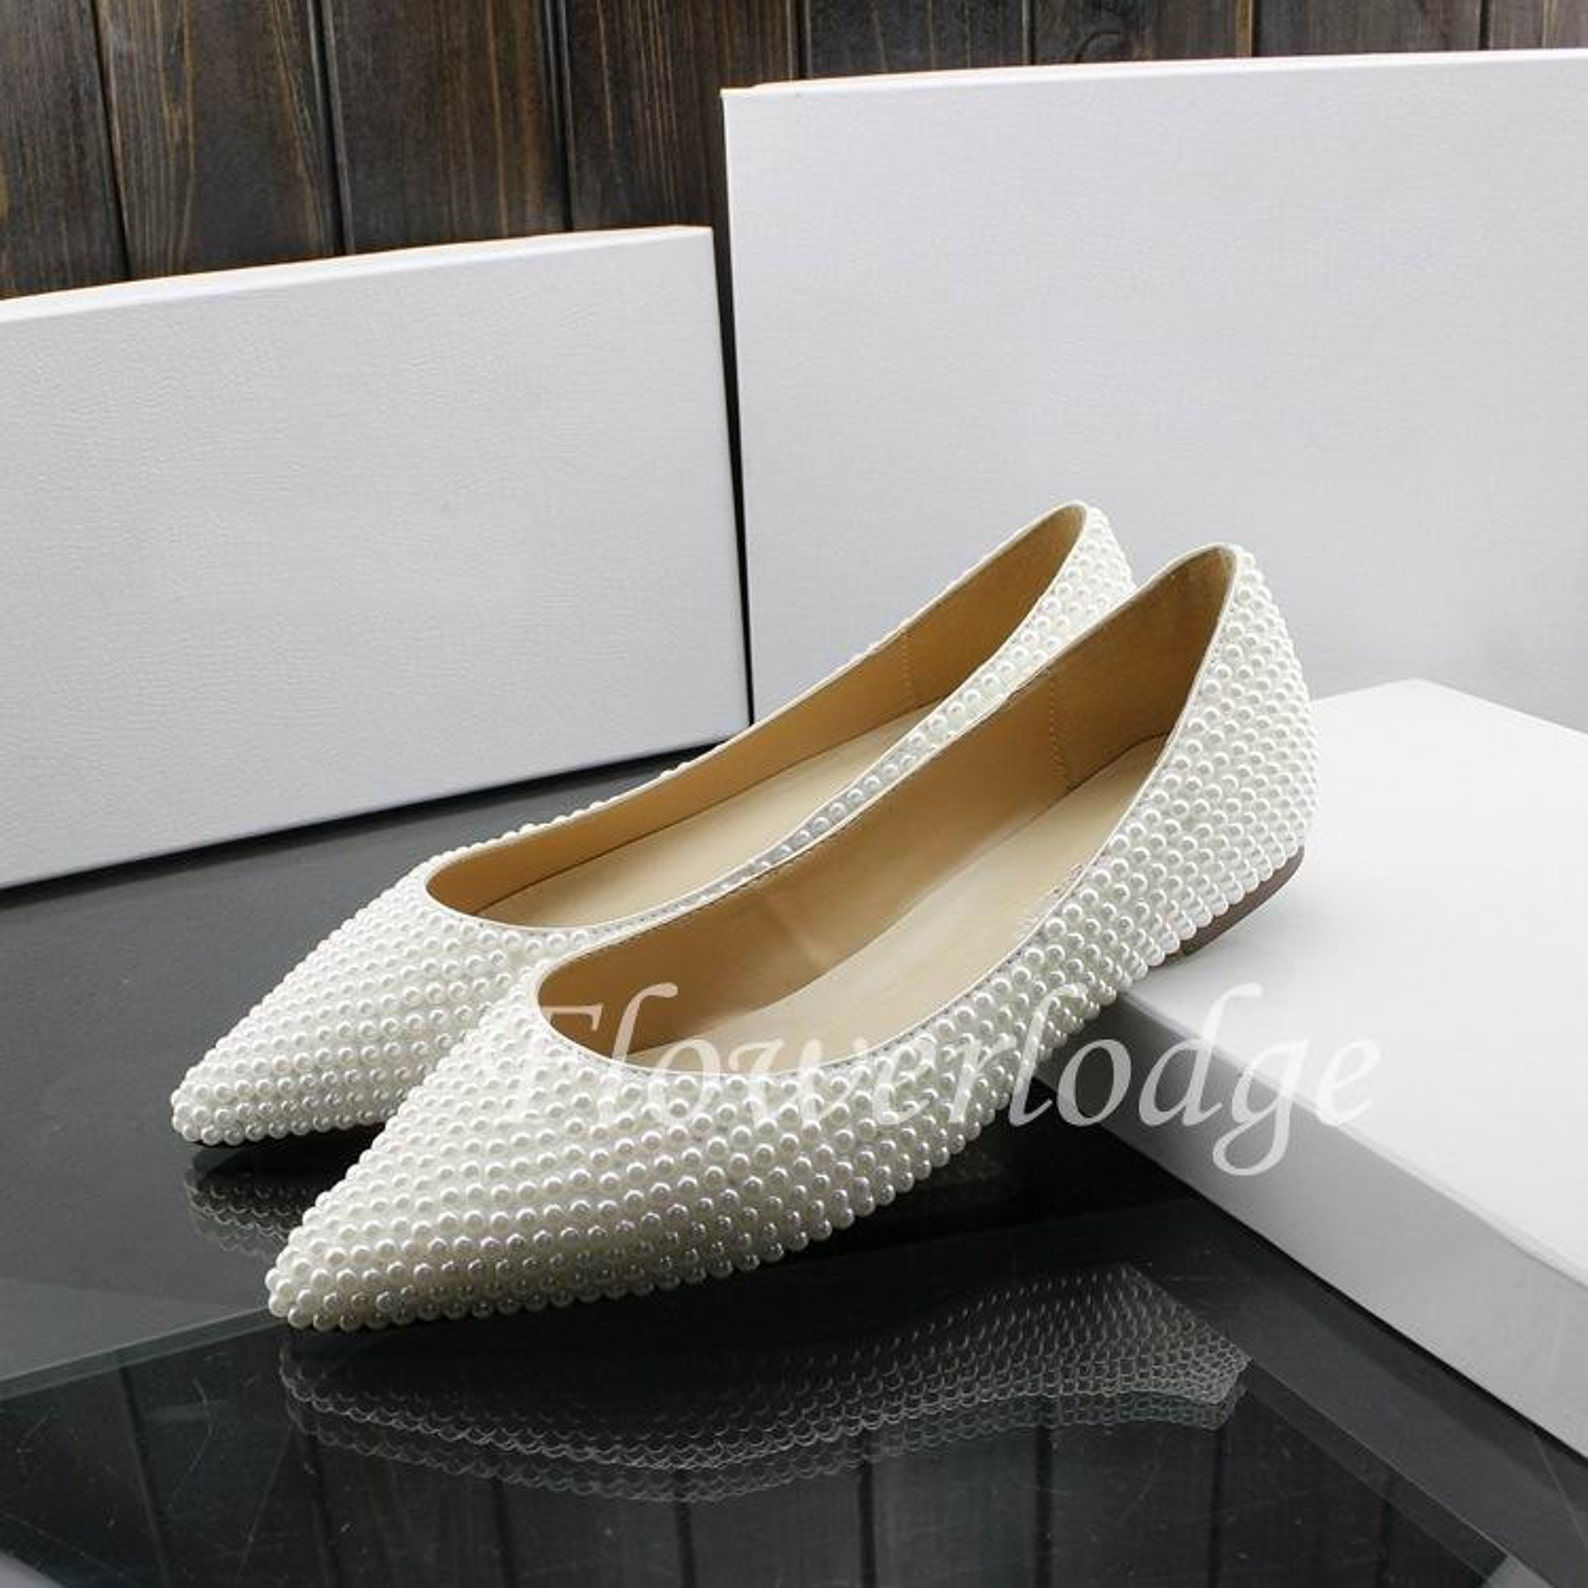 pearl flats shoes ponited toe closed toe women shoes flats ivory ballet flats soft comfortable flat shoes, custom white pearl fl